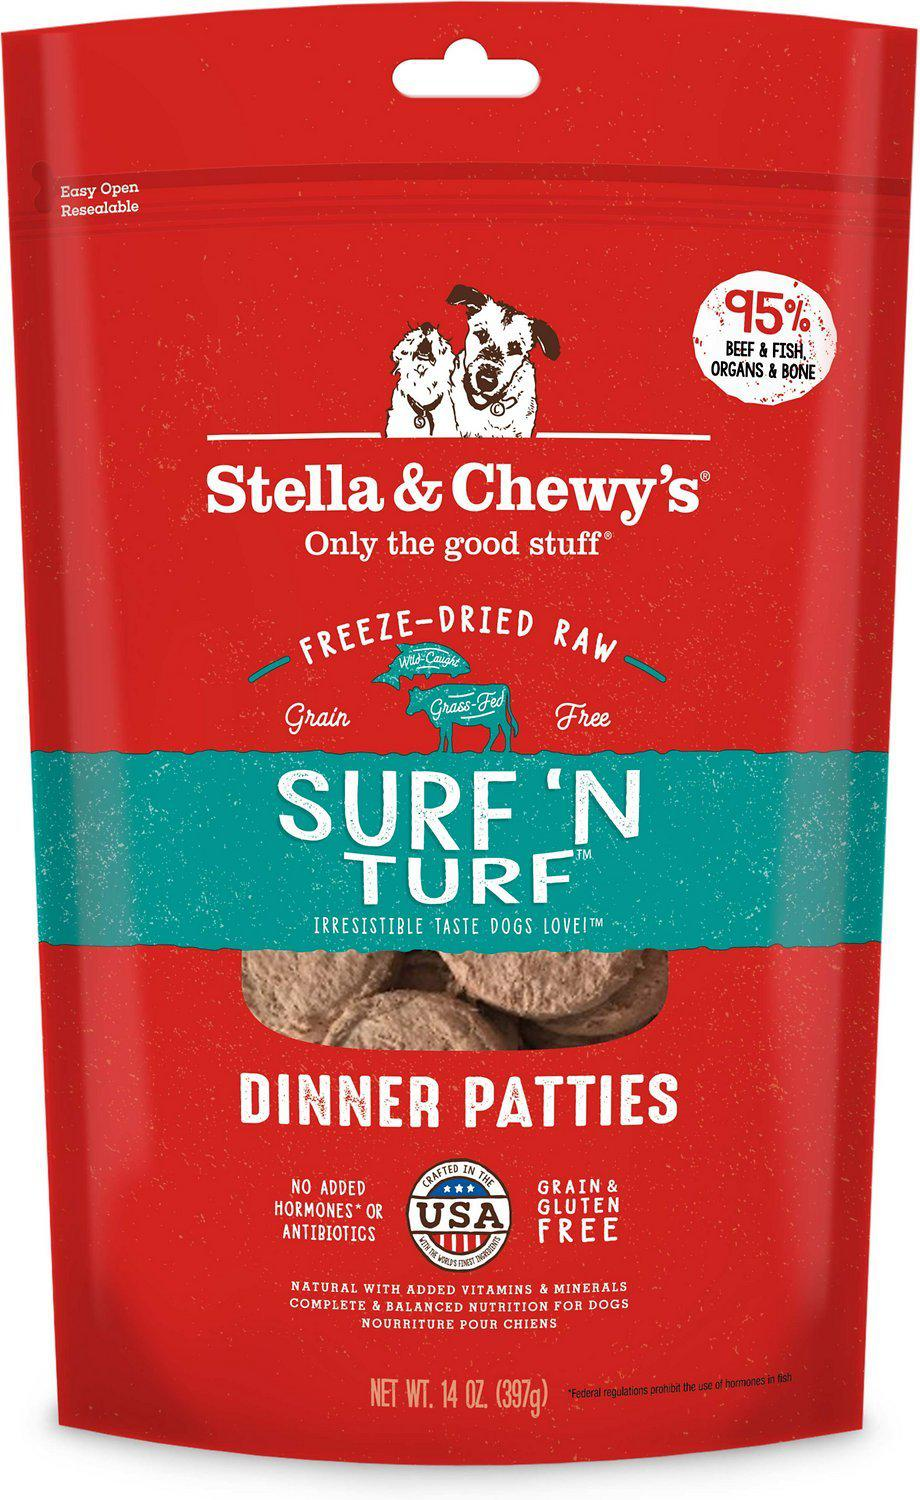 Stella & Chewy's Surf 'N Turf Grain-Free Freeze-Dried Raw Dinner Patties Dog Food-Le Pup Pet Supplies and Grooming